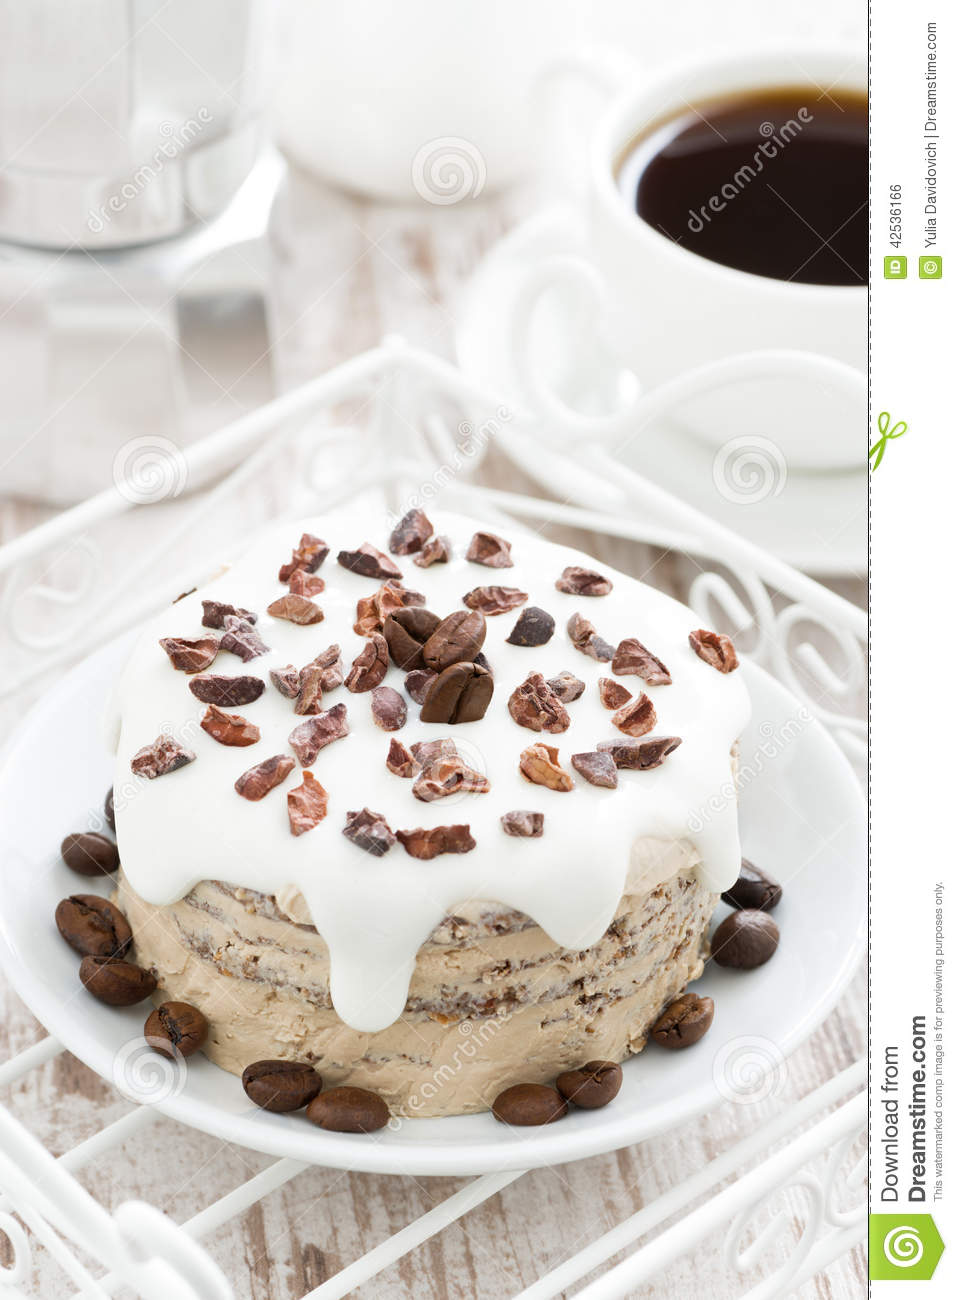 Coffee Cake With Icing Decorated With Cocoa Beans, Top ...